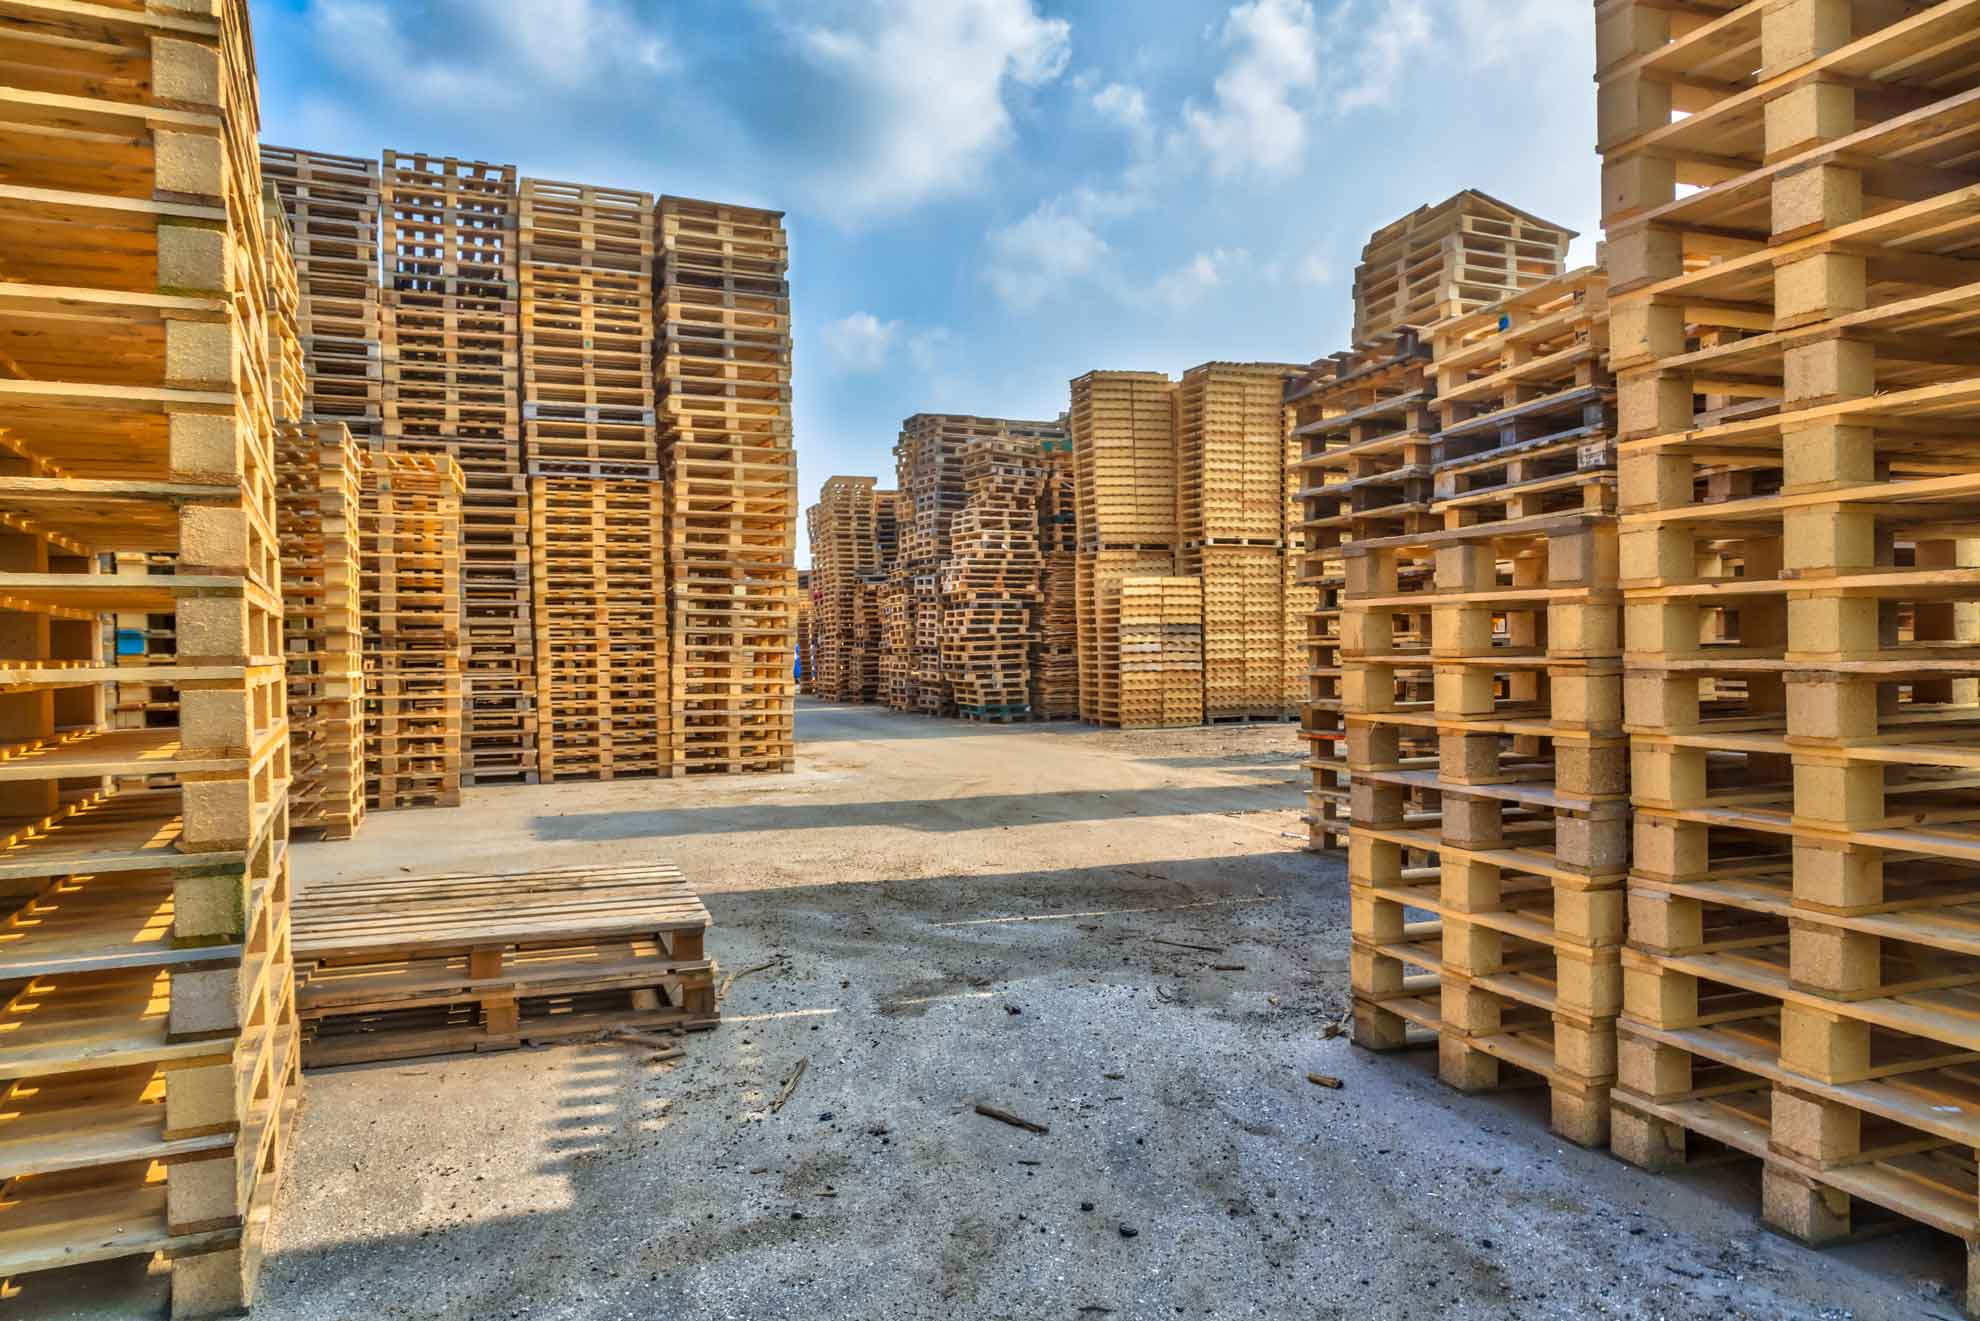 Discount-Pallets-in-South-Florida_-Opa-Locka-Pallets